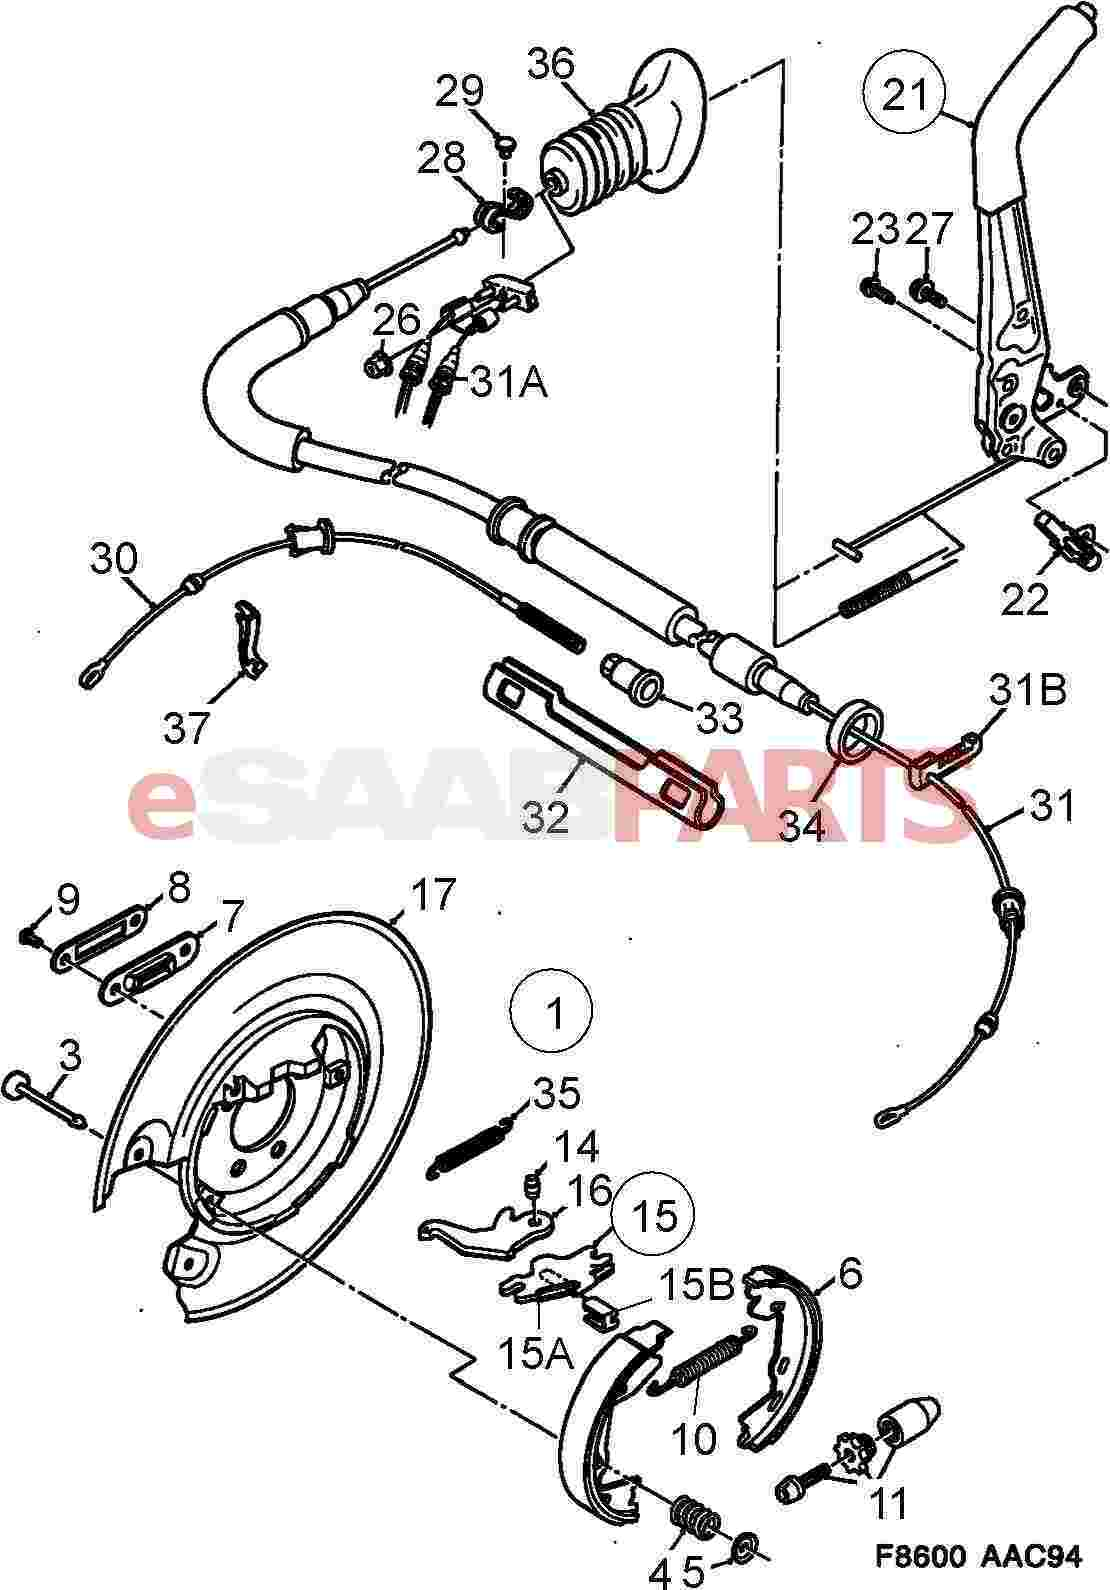 1992 saab 900 diagram showing brake line